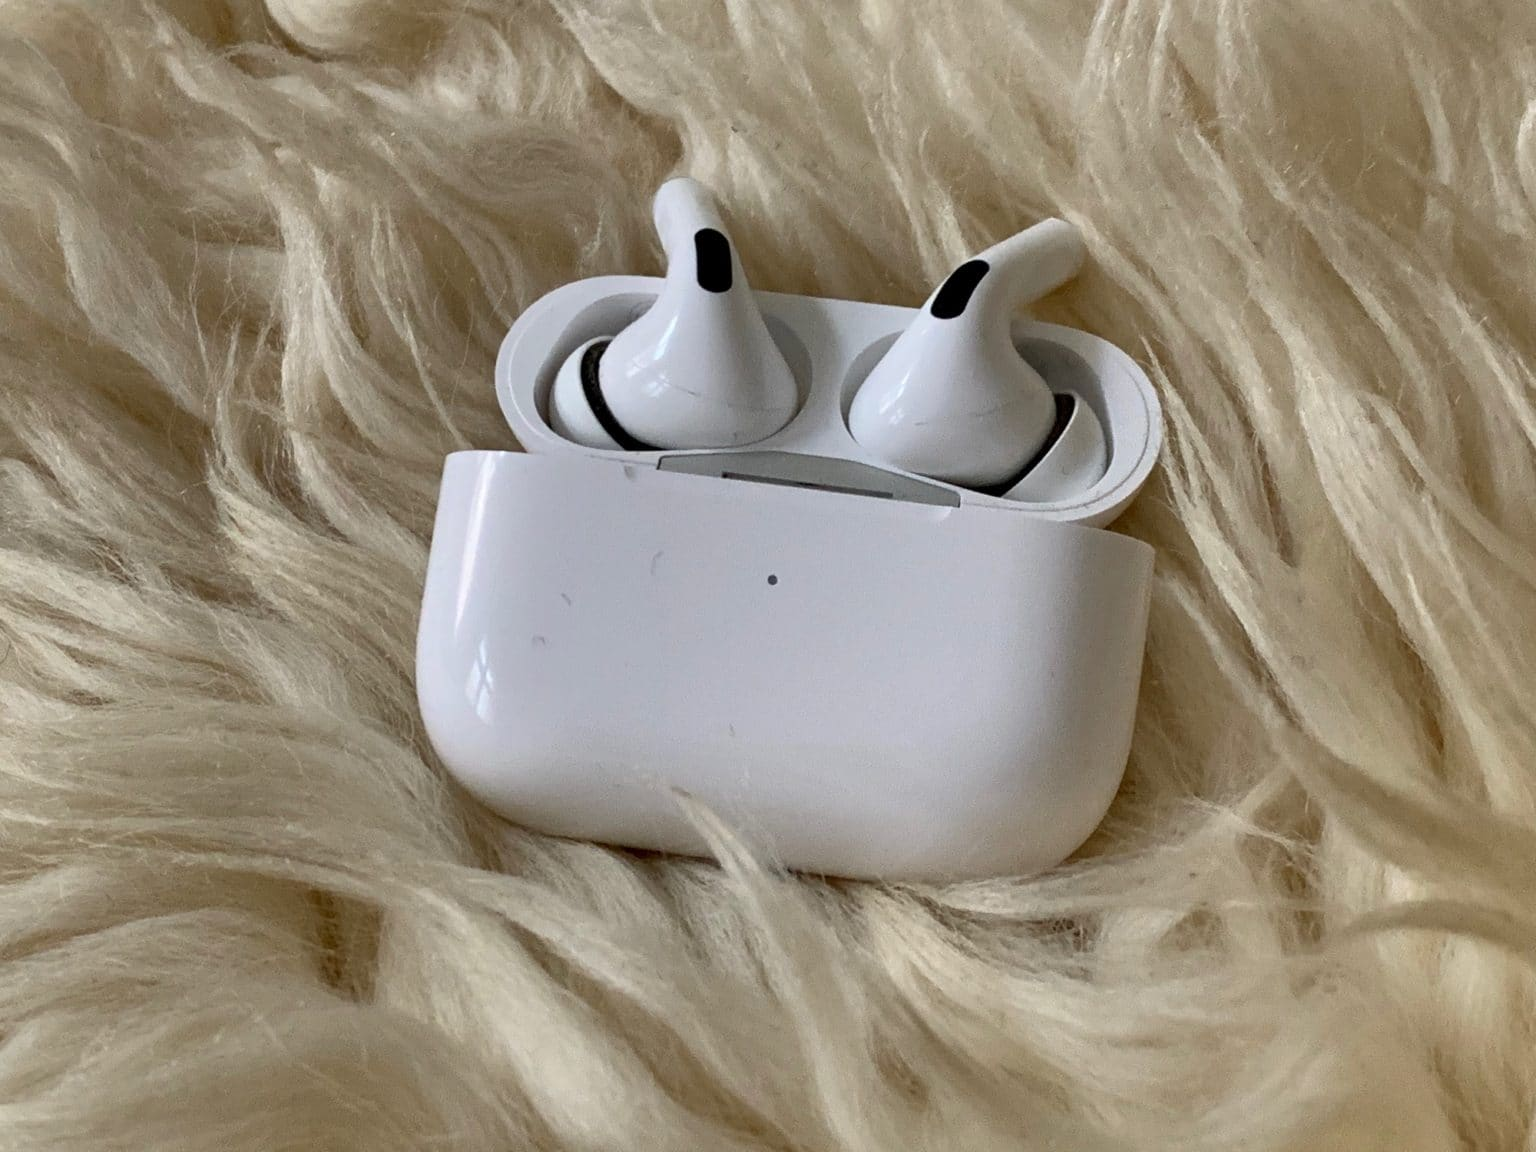 AirPods sharing